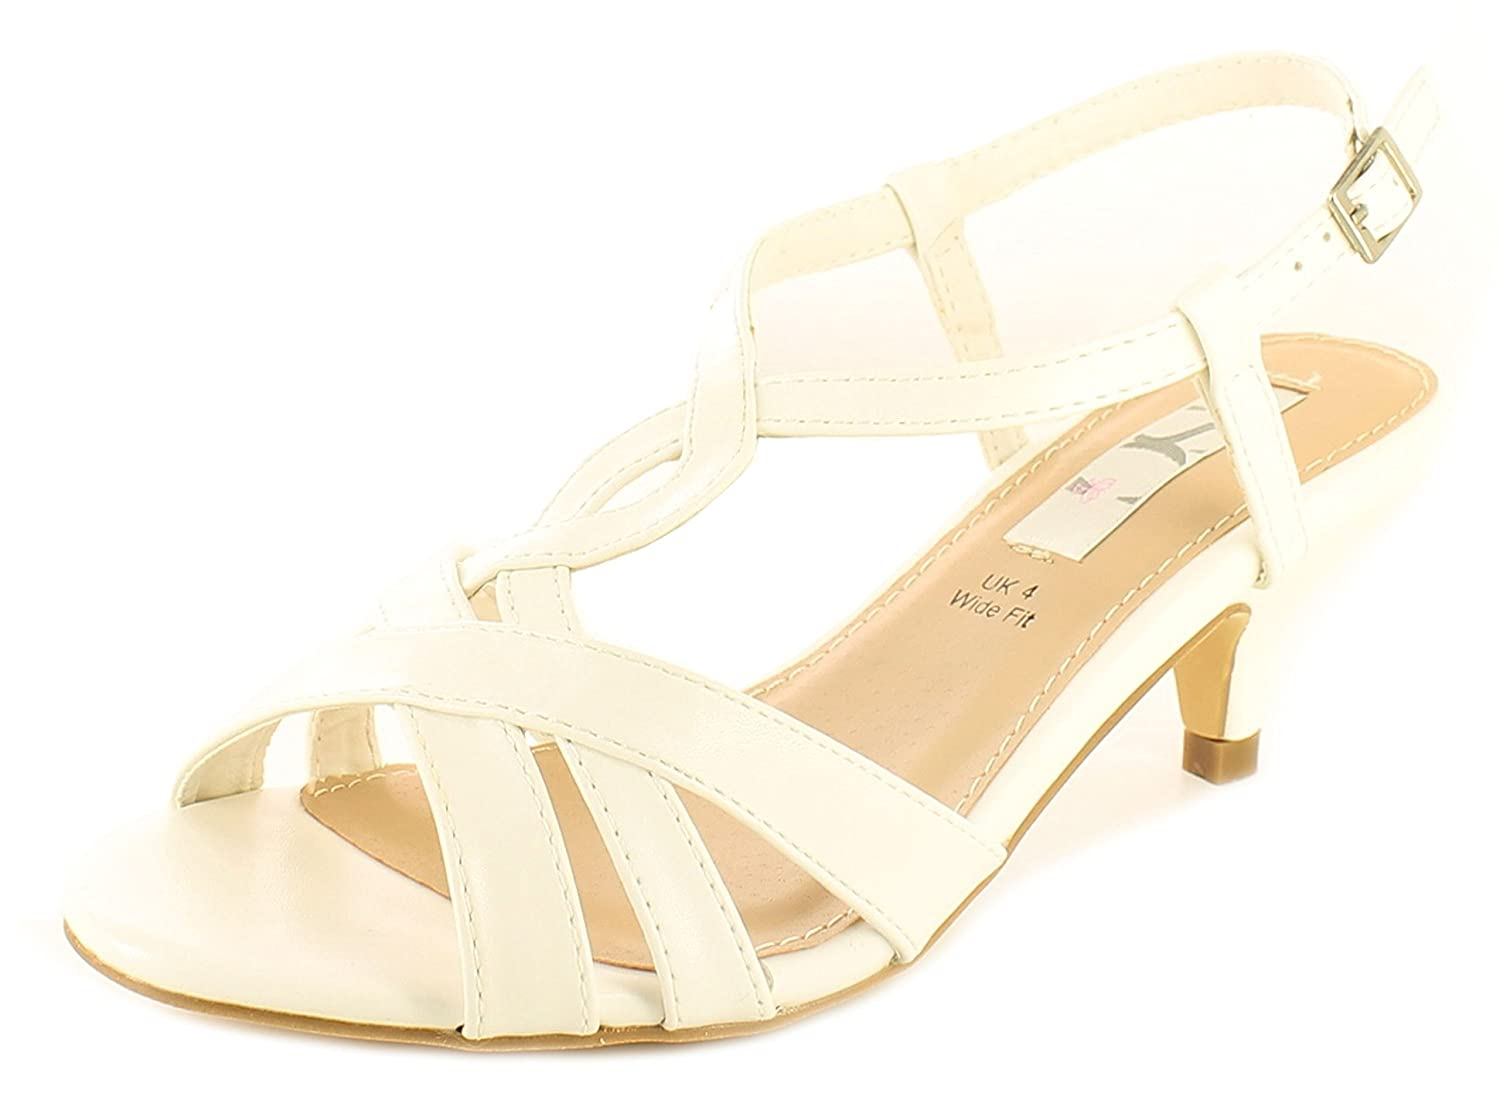 d914f19a0c7 Wynsors Ladies White Strappy Low Heeled Evening Wedding Occasion Sandals -  White - UK Size 8  Amazon.co.uk  Shoes   Bags